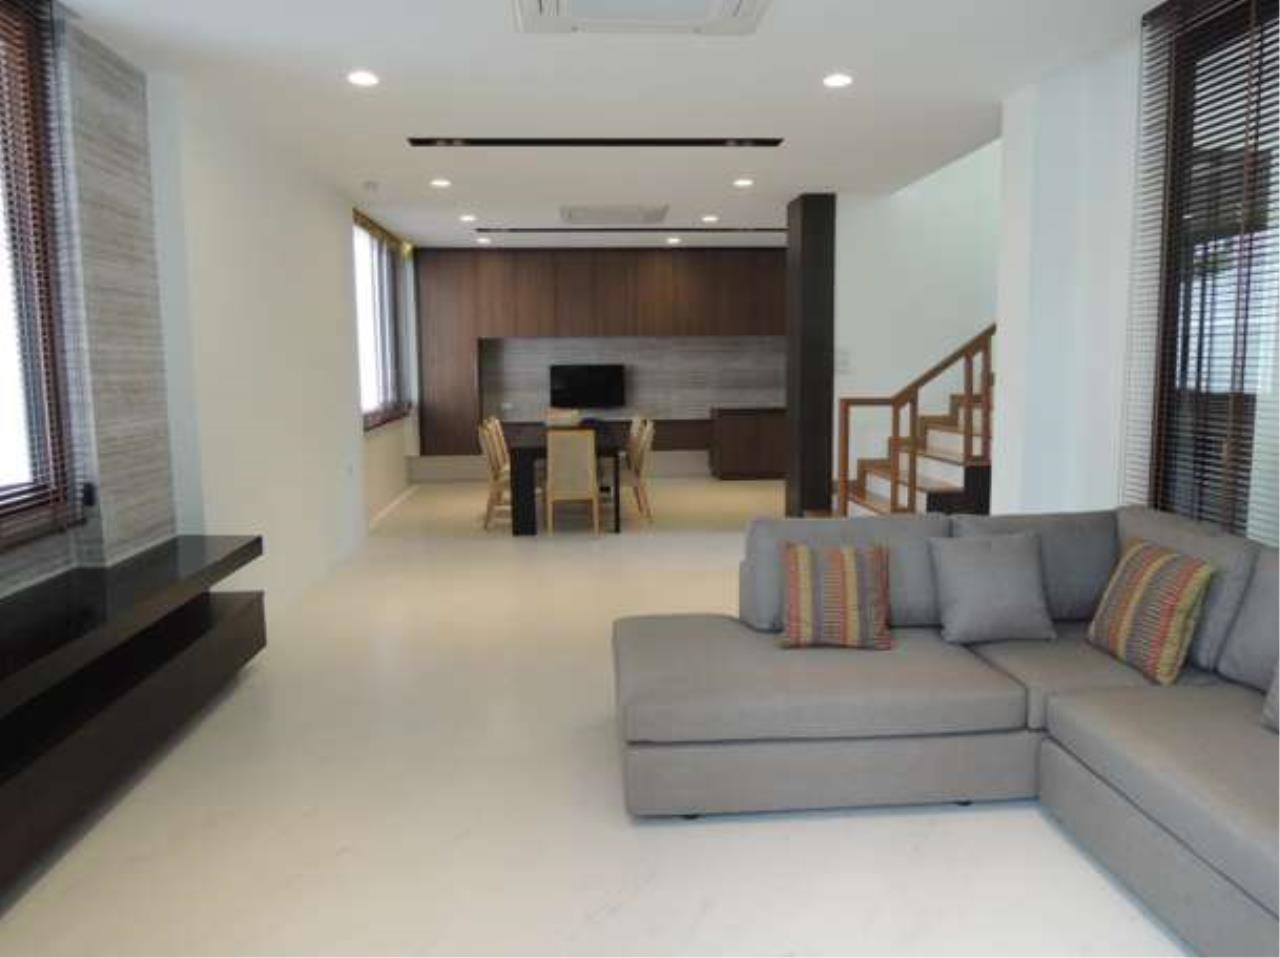 Right Move Thailand Agency's HR423 House For Sale  60,000,000 THB  - 4 Bedrooms - 315 sqm. 4